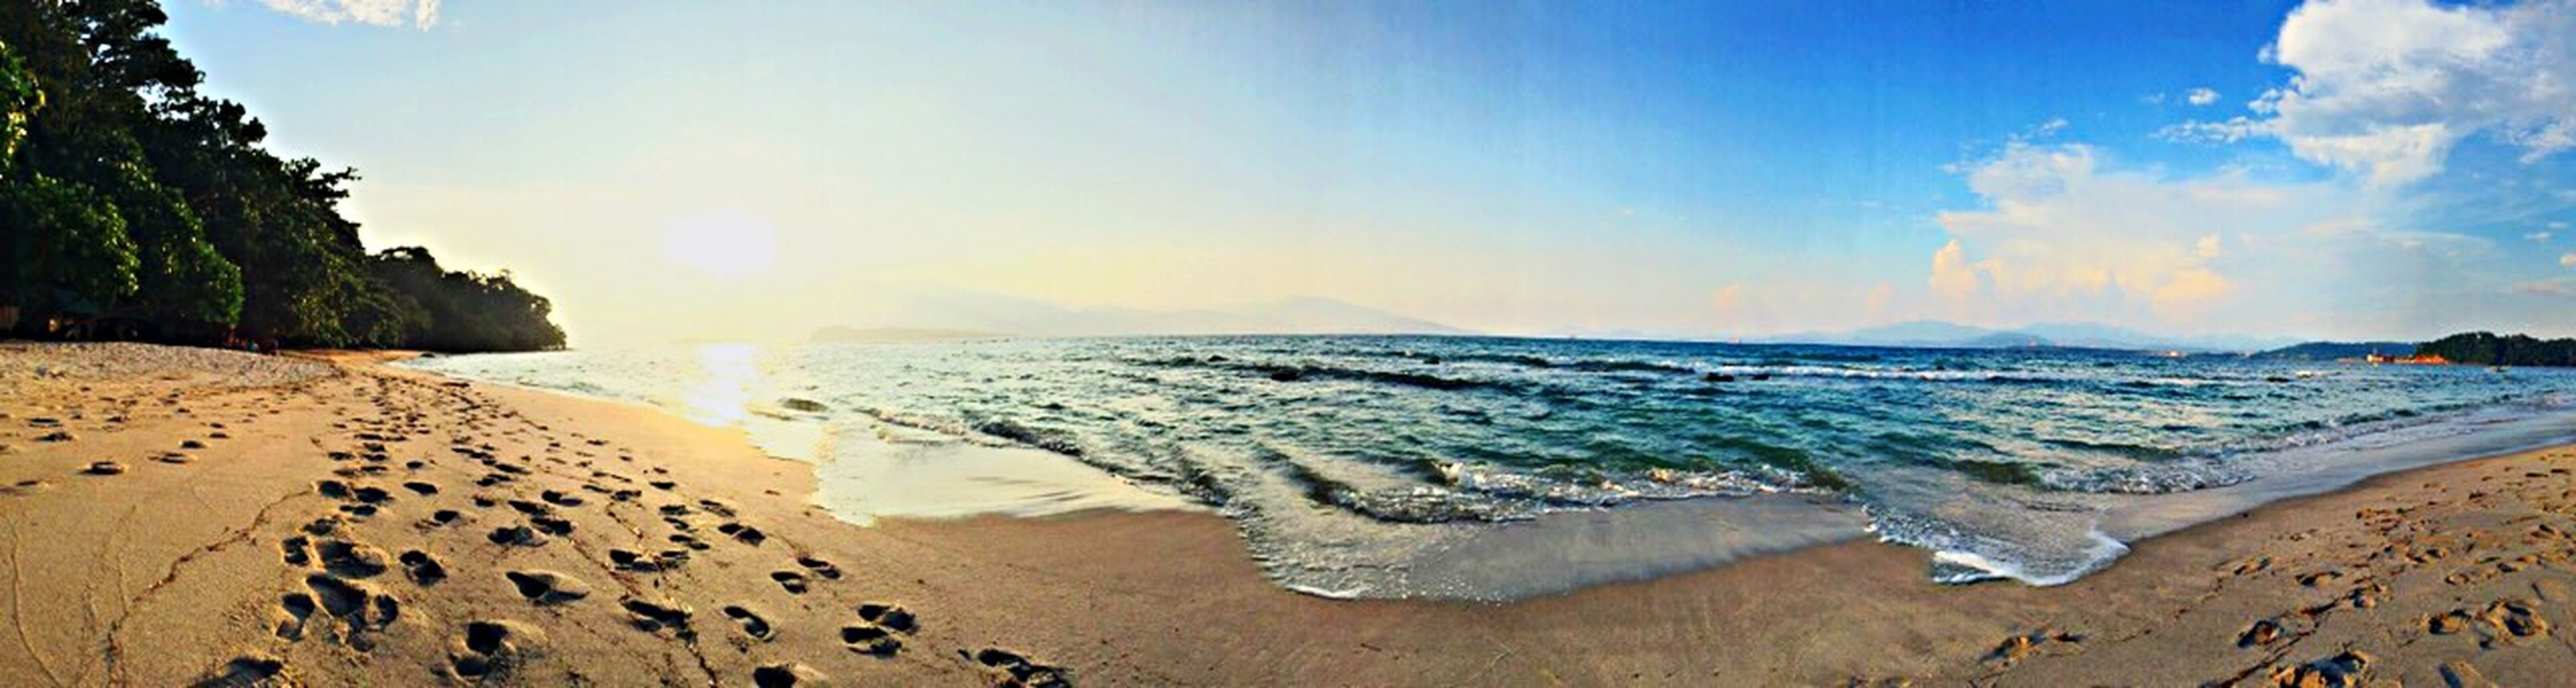 sea, beach, water, horizon over water, shore, sand, scenics, tranquil scene, tranquility, beauty in nature, sky, nature, sunlight, blue, coastline, idyllic, wave, vacations, incidental people, panoramic